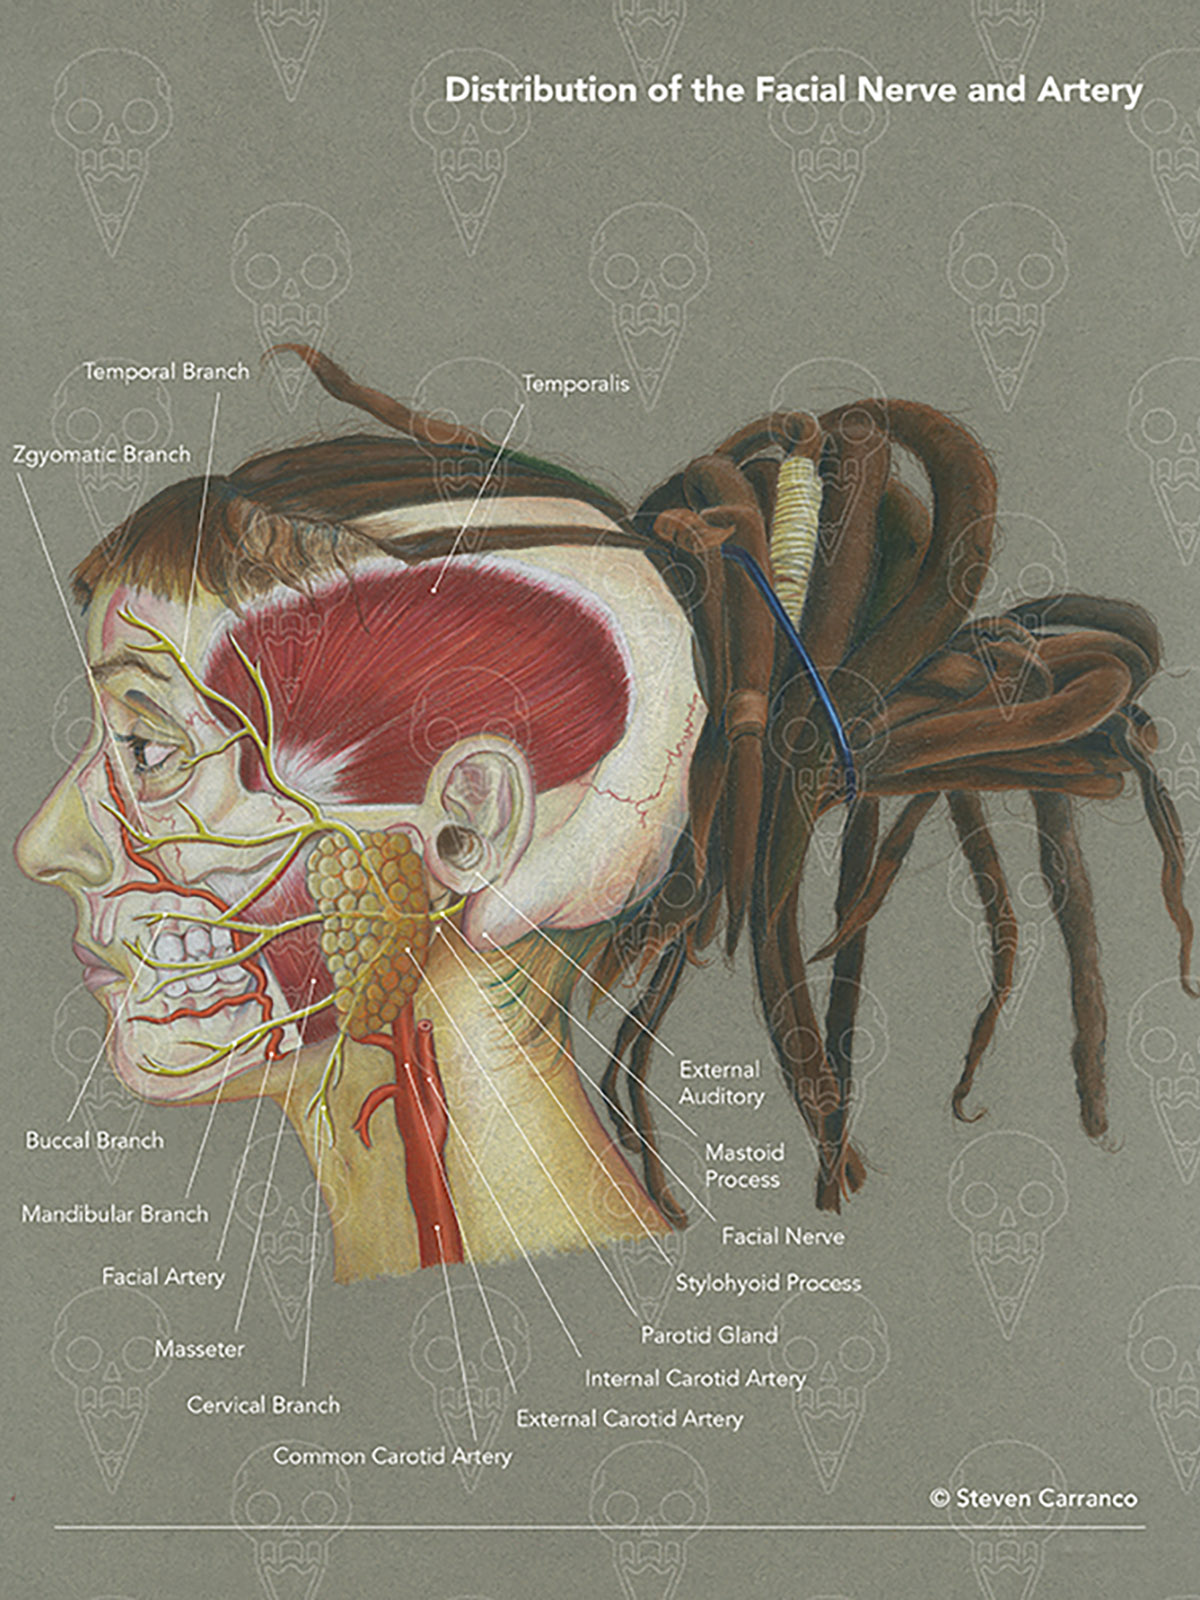 Illustration of the facial nerve and artery.